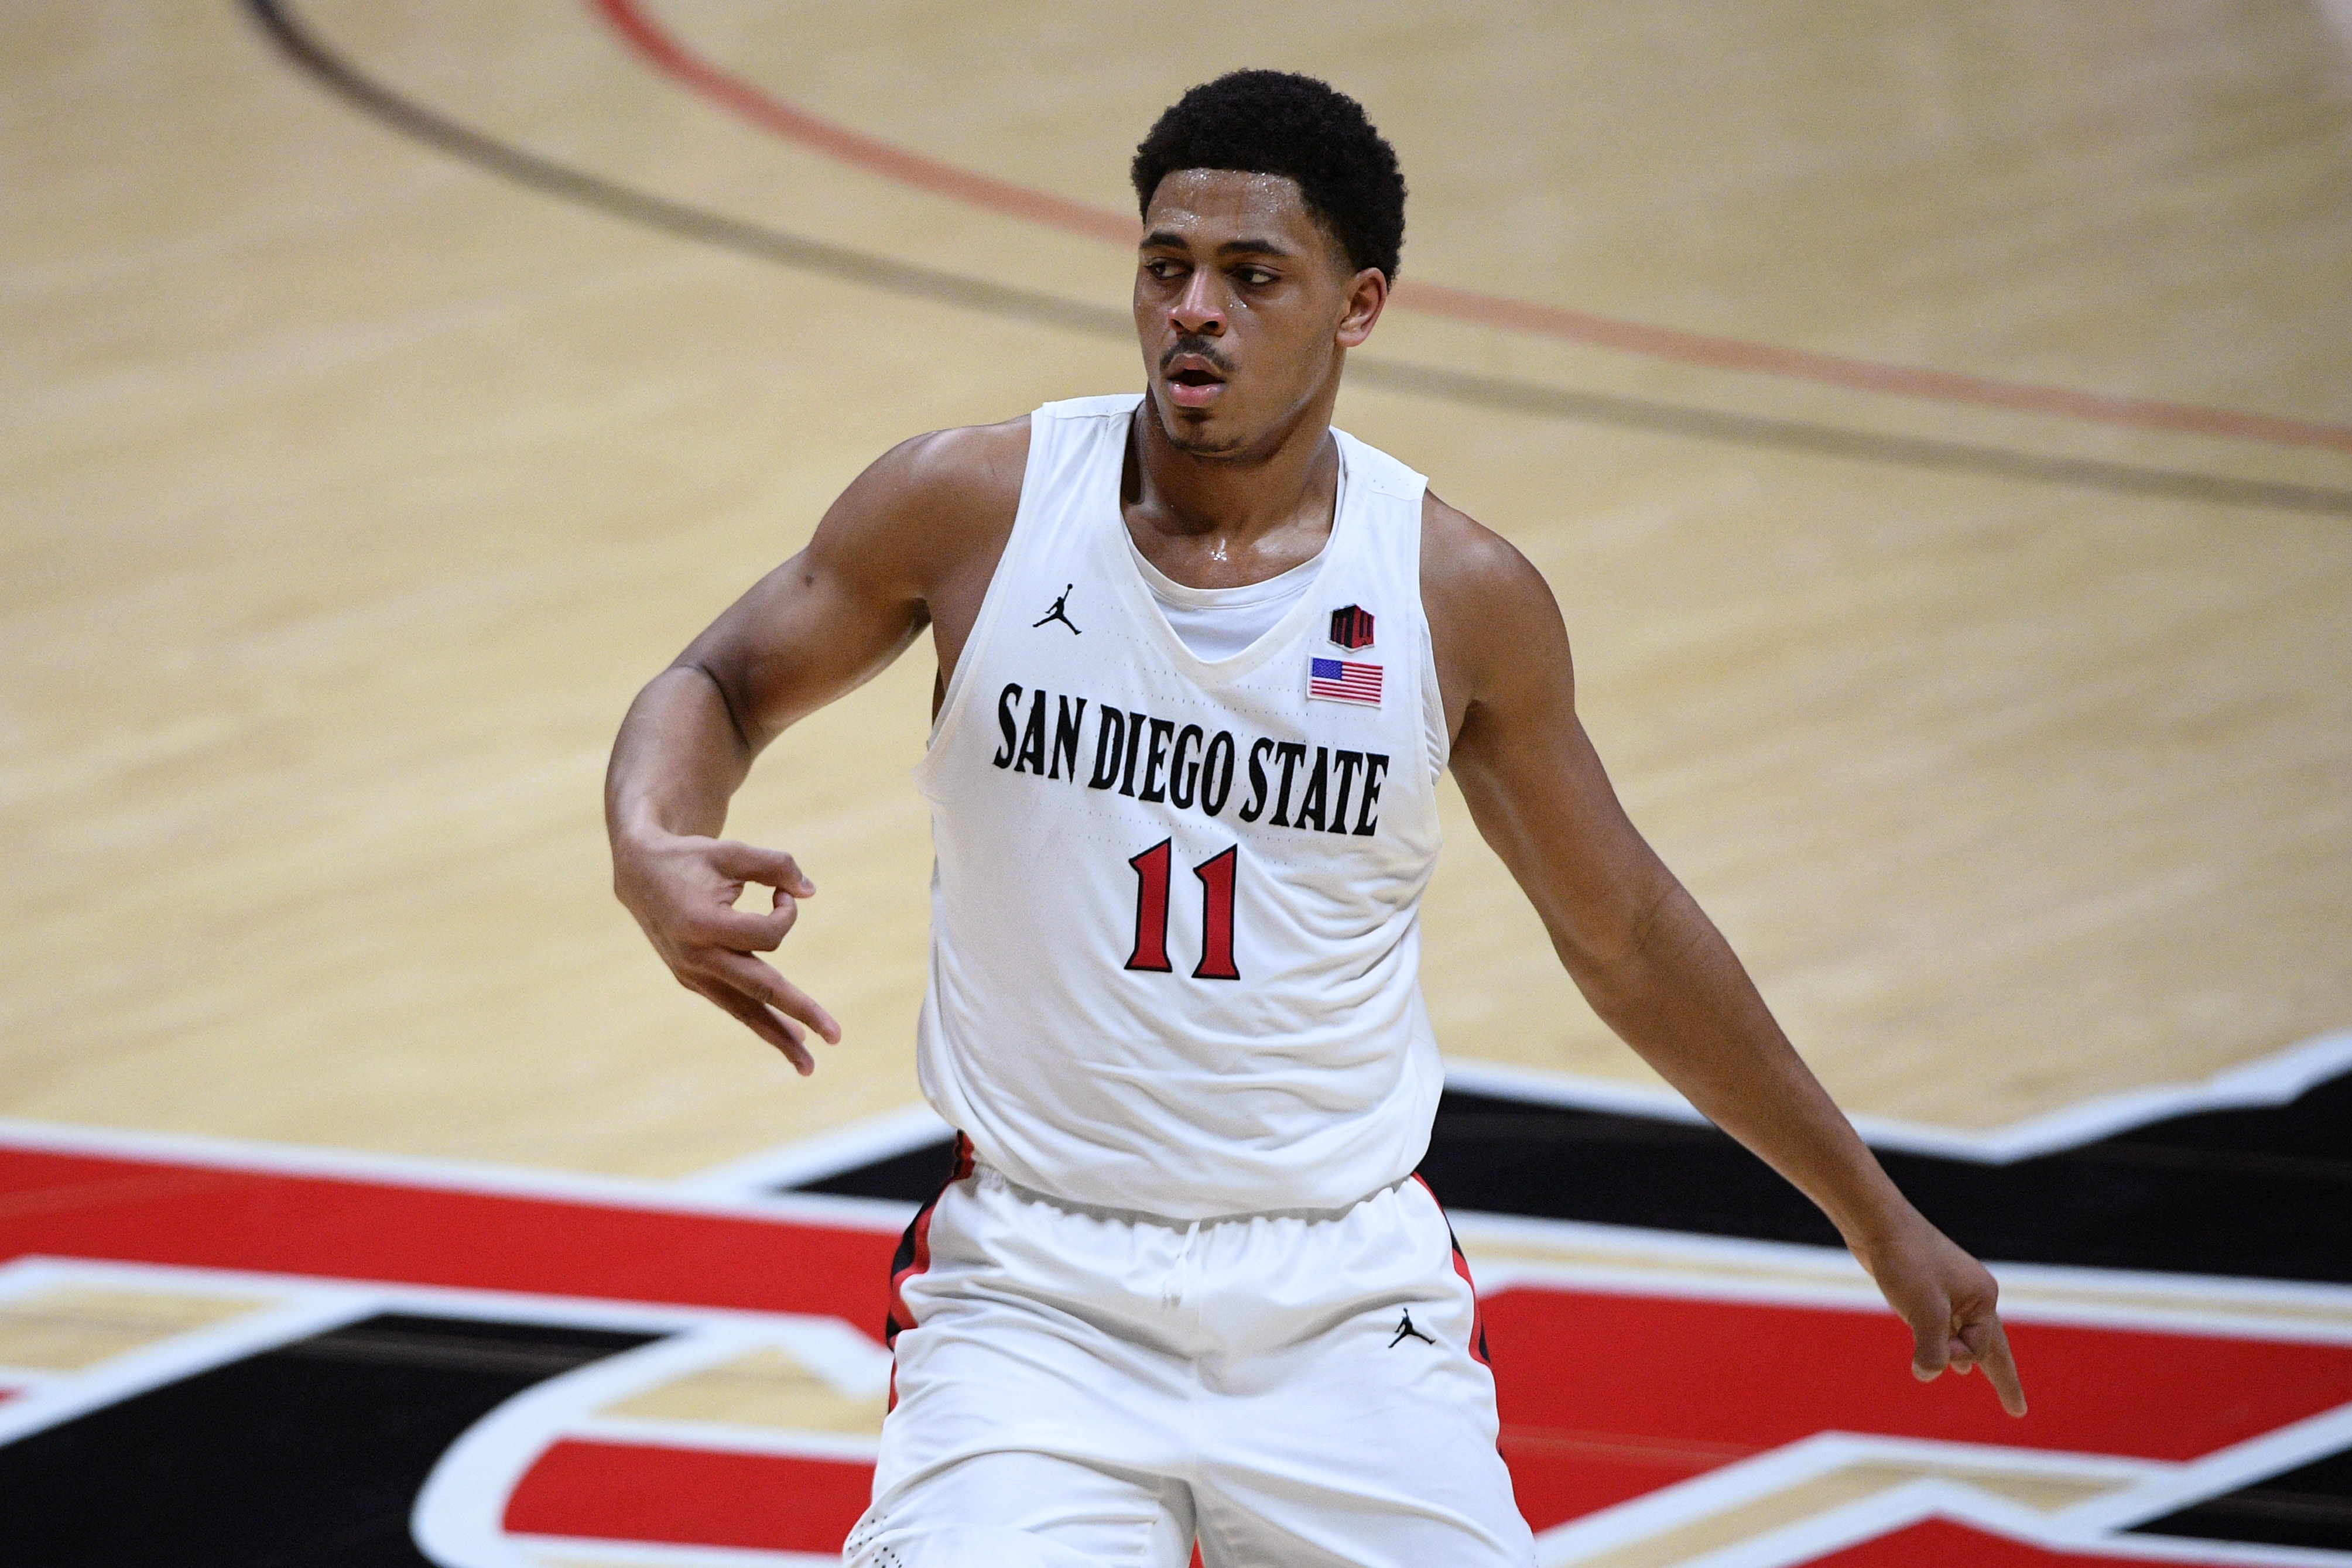 Jan 30, 2021; San Diego, California, USA; San Diego State Aztecs forward Matt Mitchell (11) gestures after a three-point basket against the Wyoming Cowboys during the first half at Viejas Arena. Mandatory Credit: